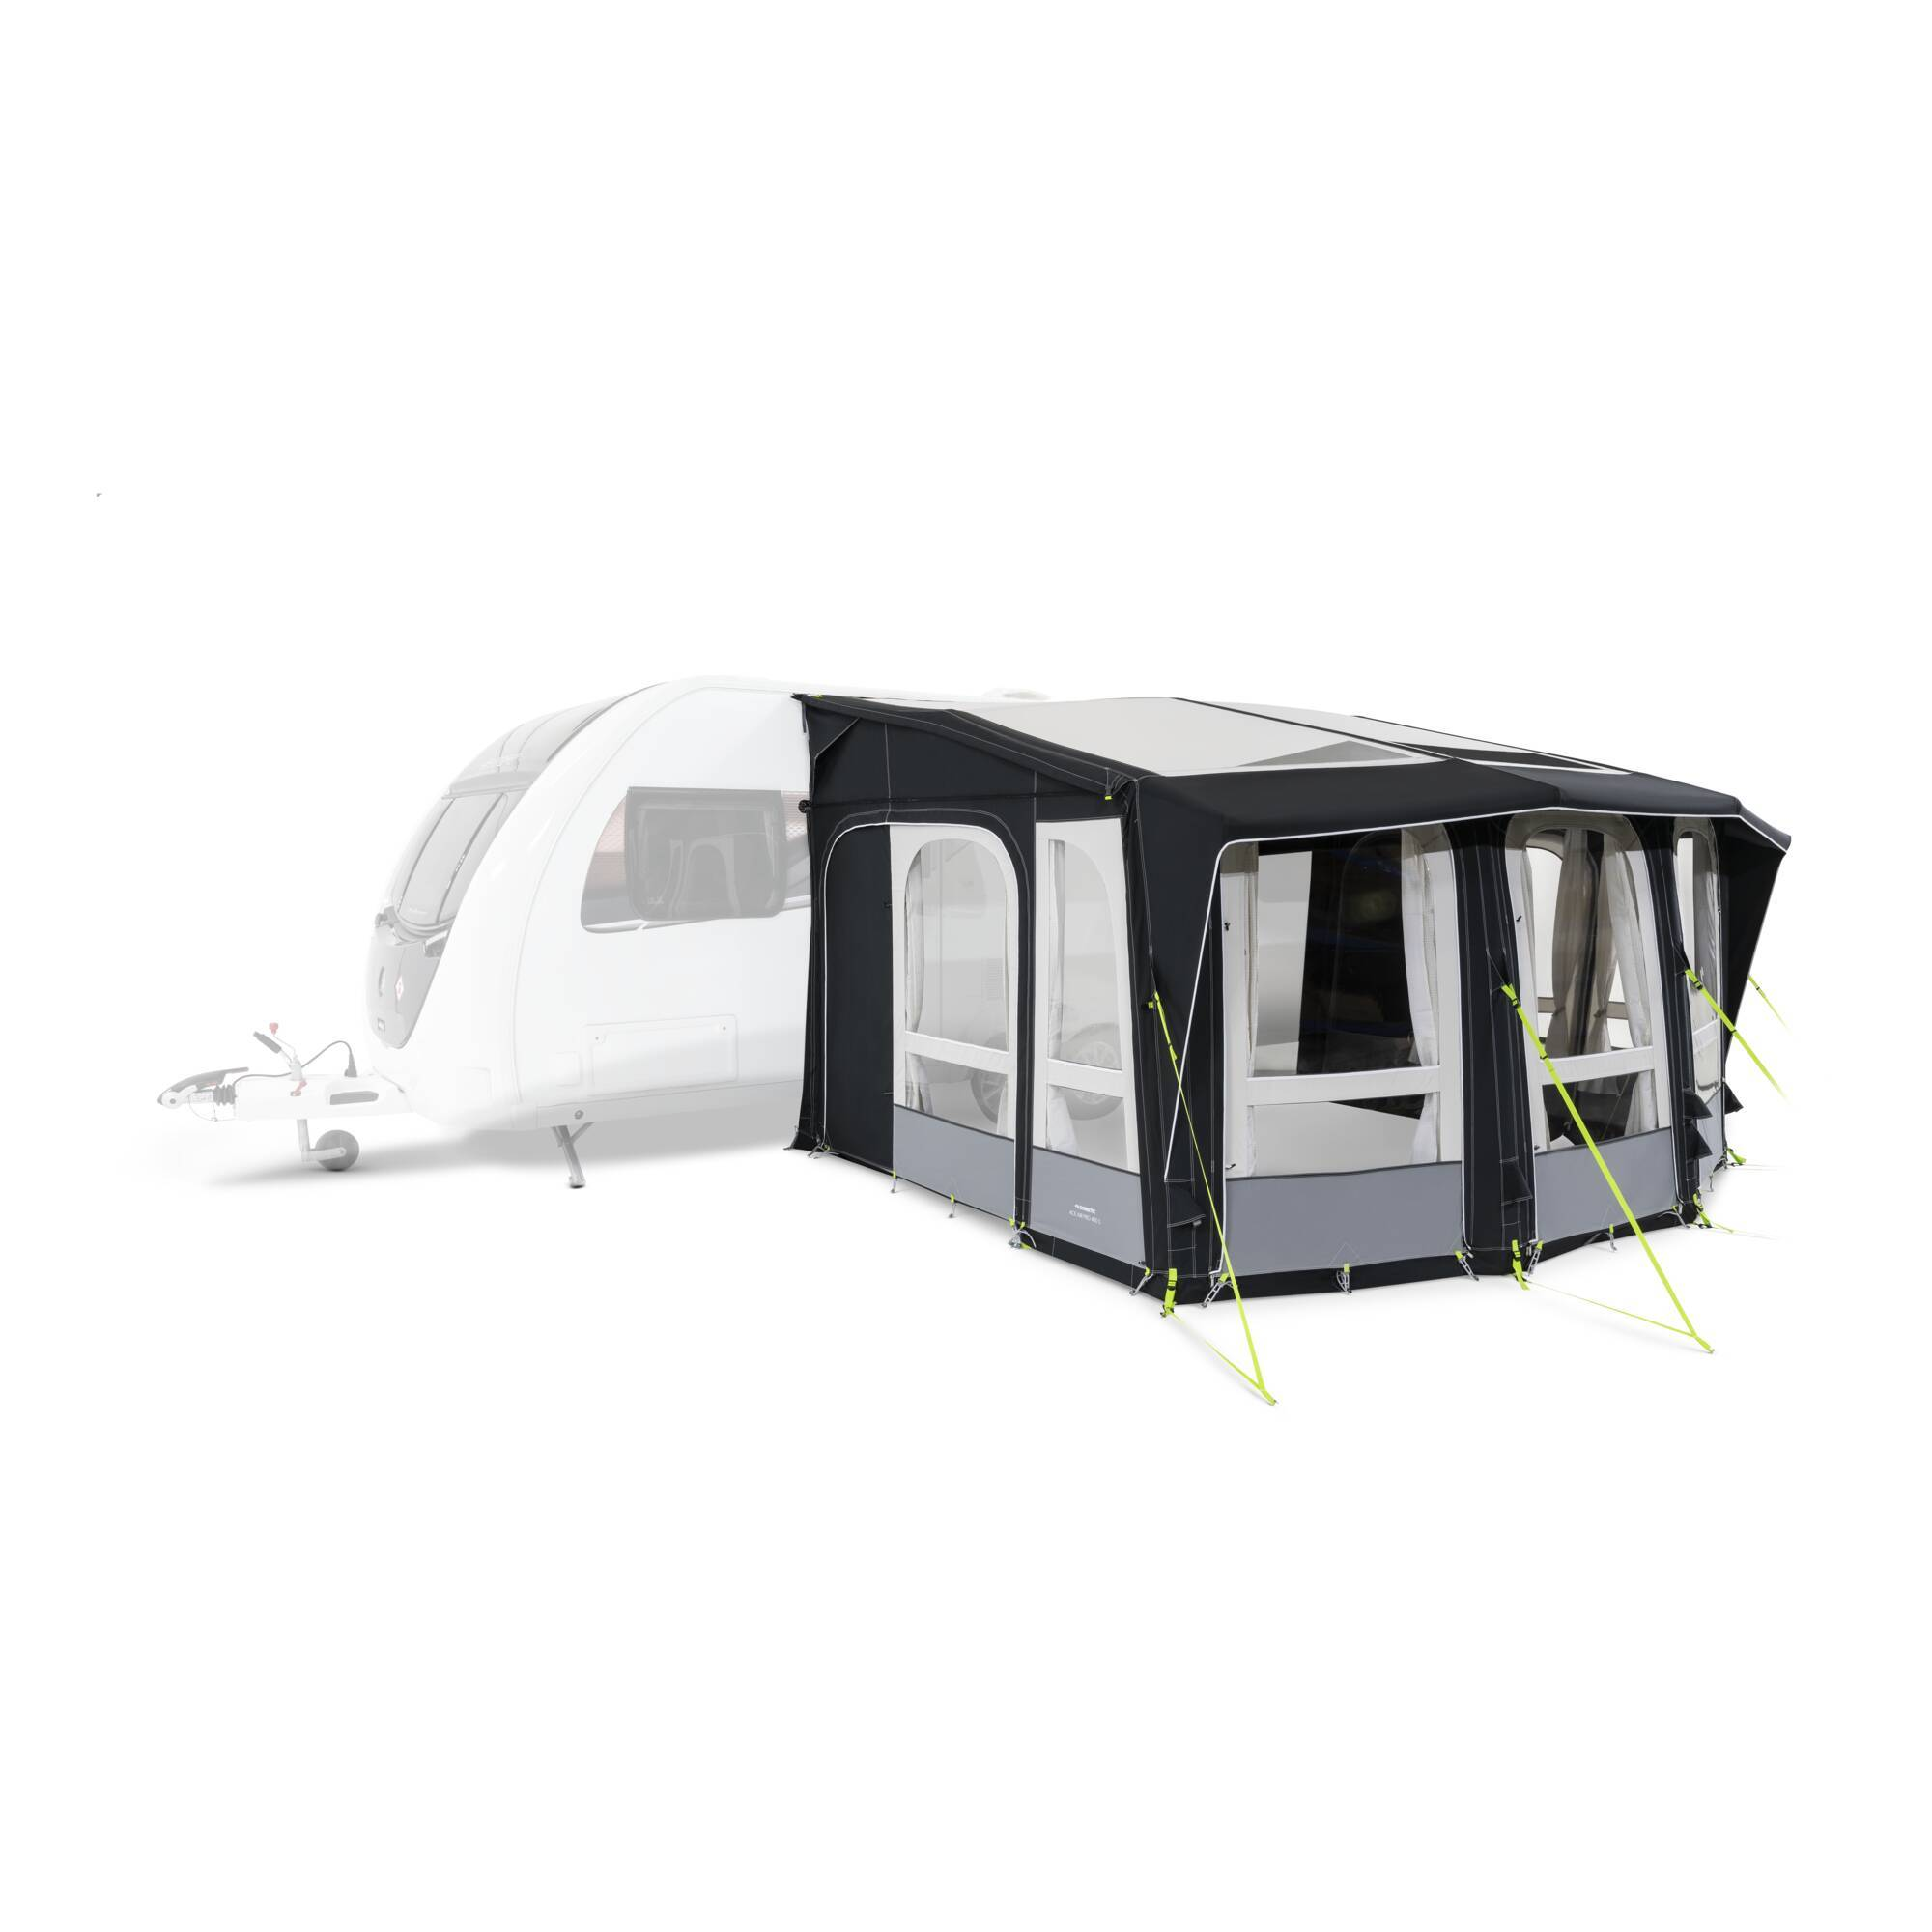 Dometic Ace 400 Air Pro Awning